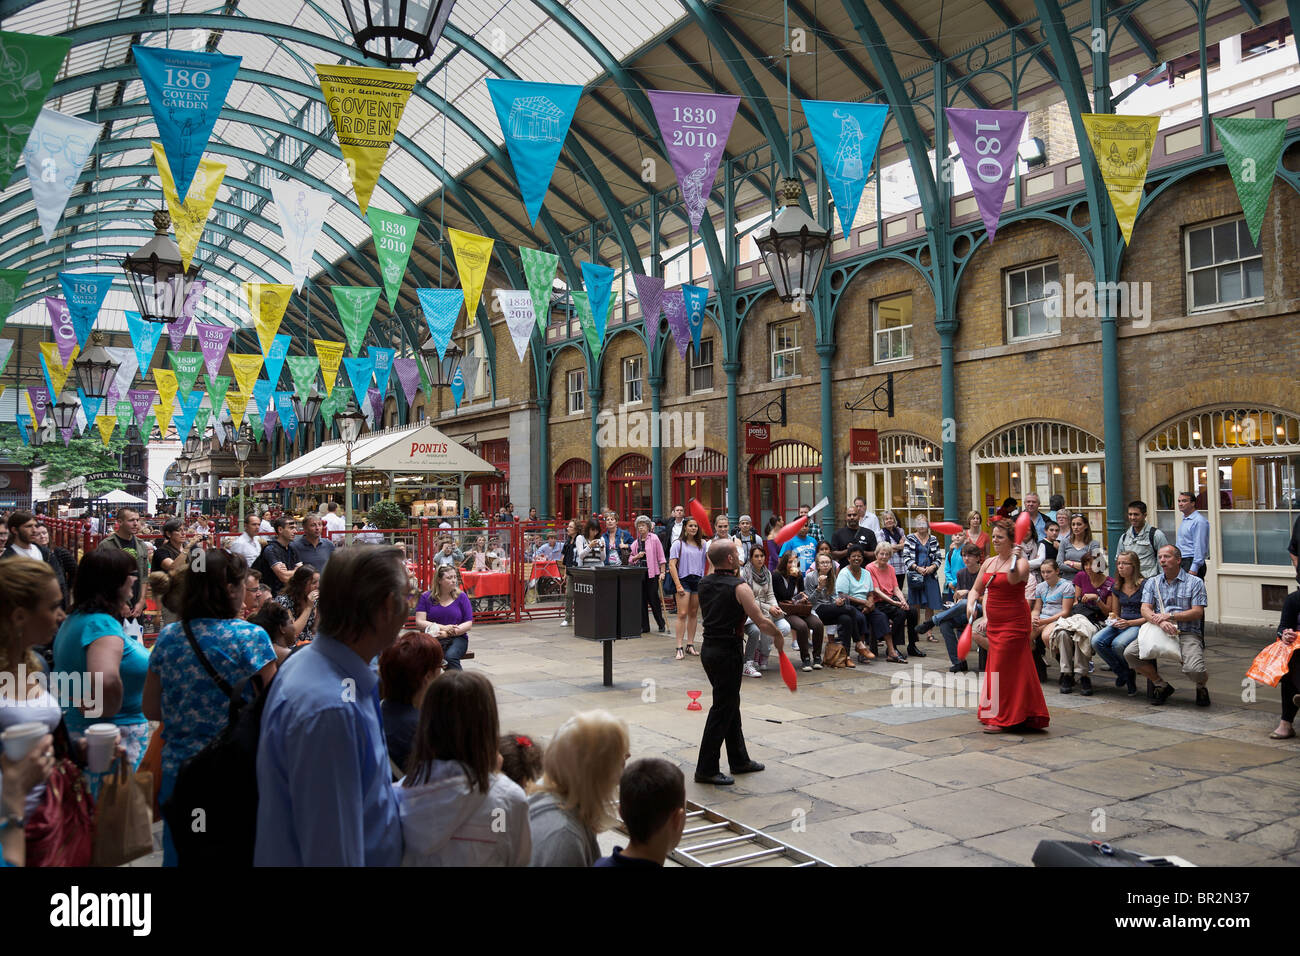 Entertainers at Covent Garden, London - Stock Image